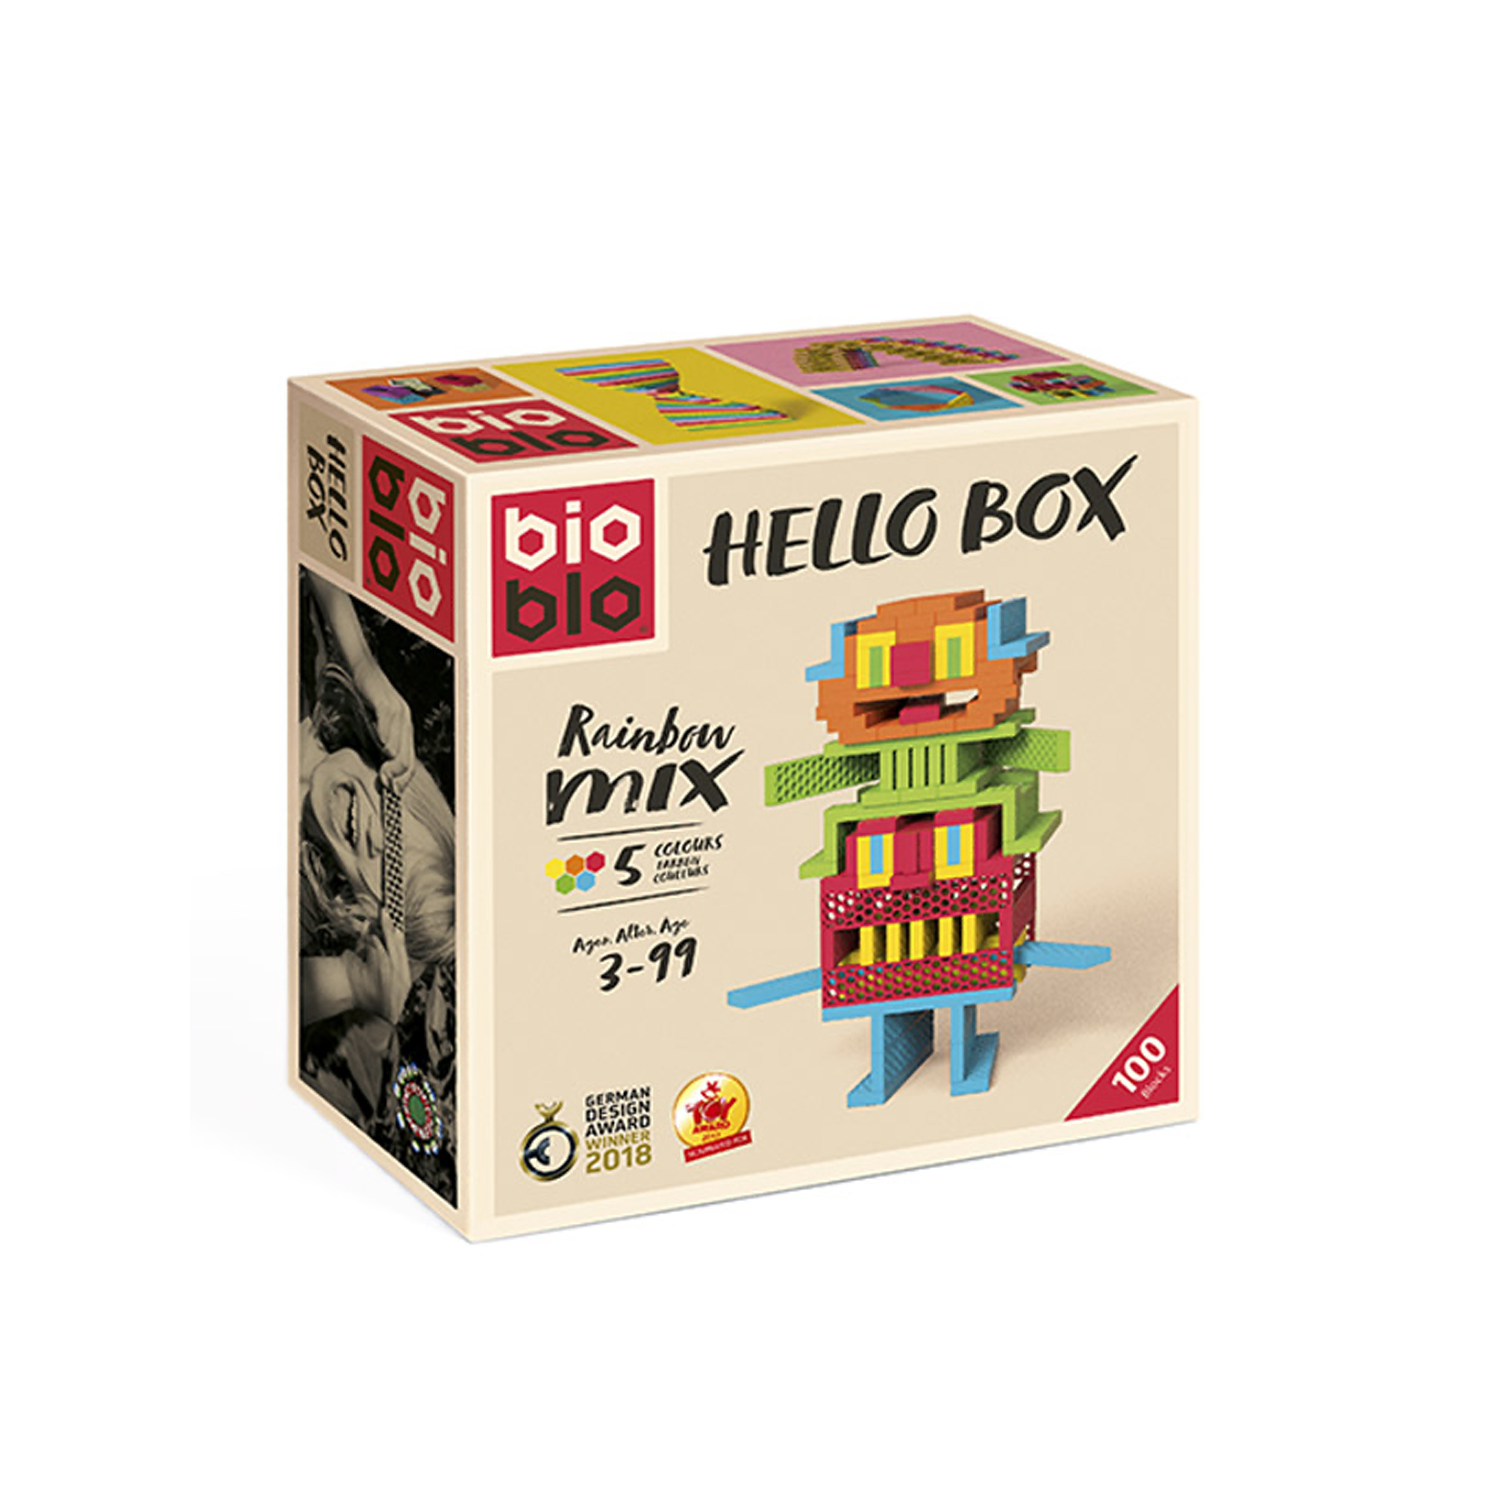 Bioblo. Hello box